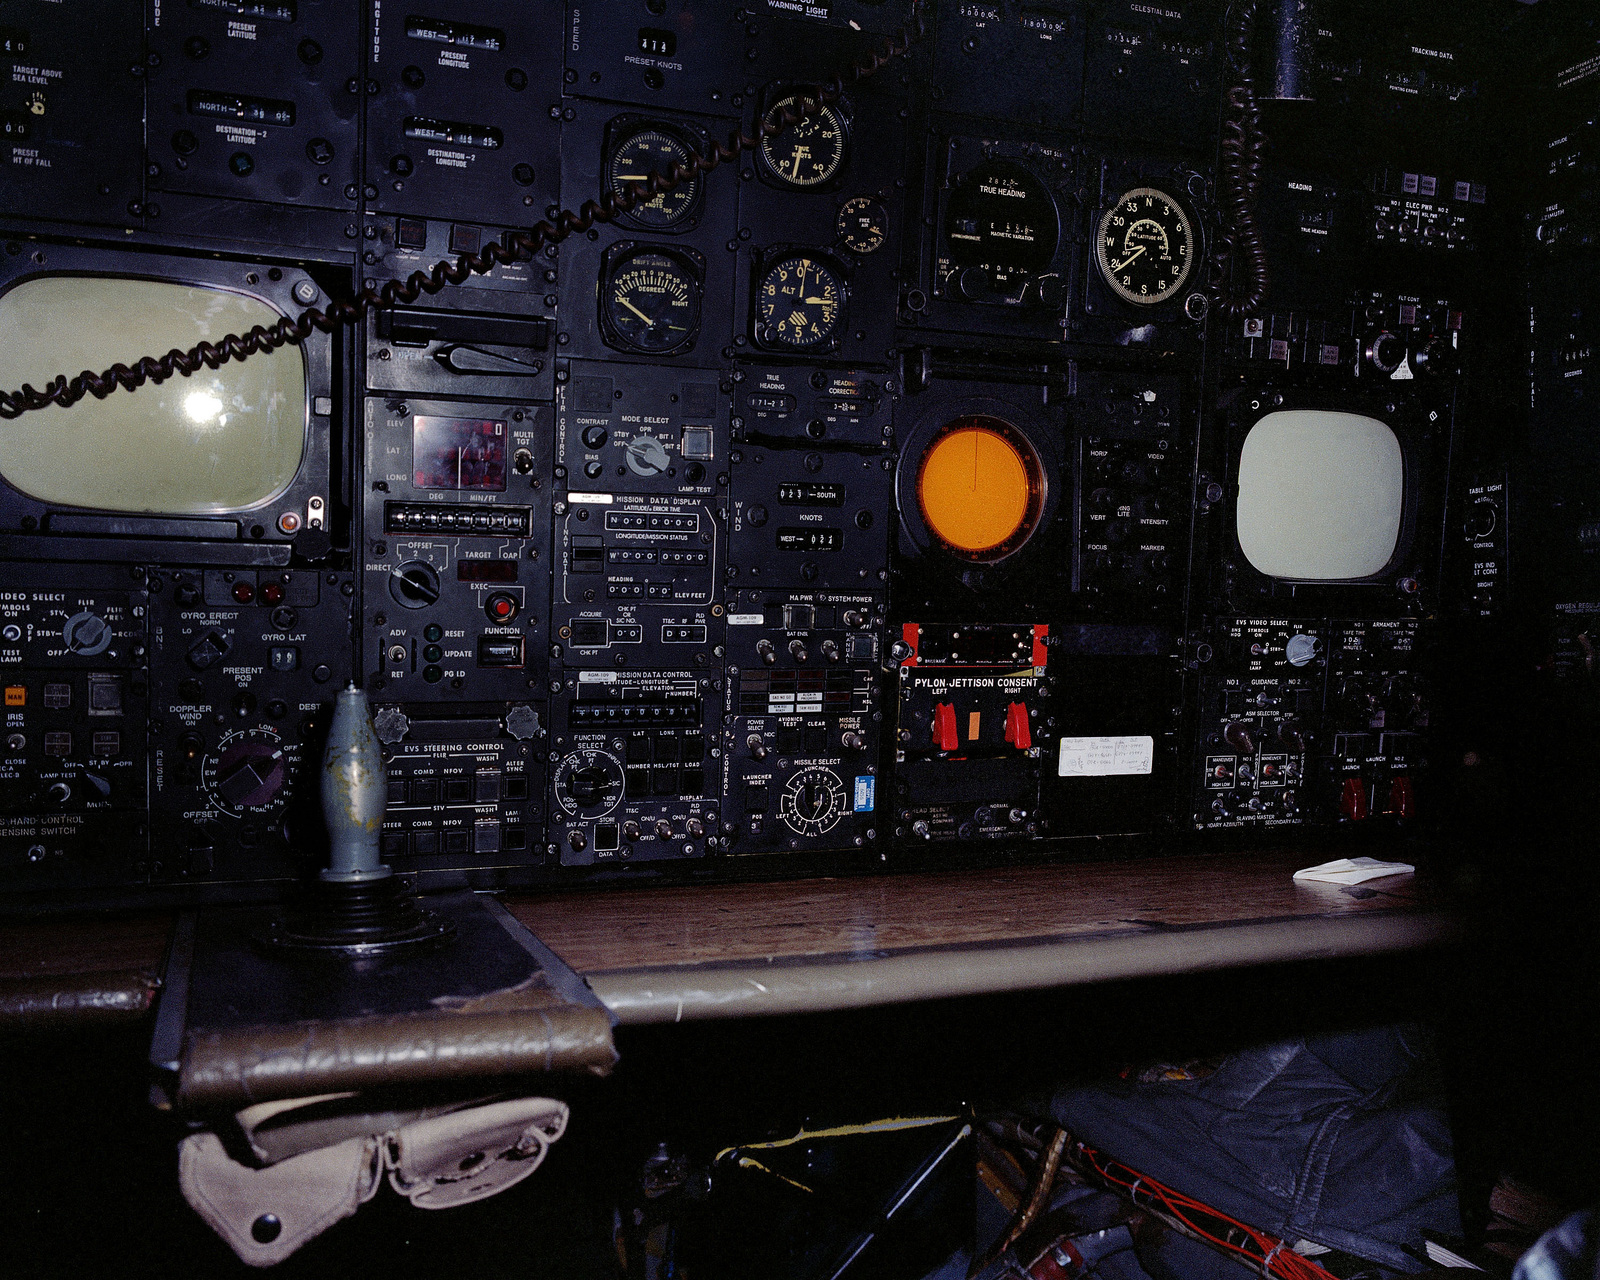 A close-up view of an instrument panel of a B-52